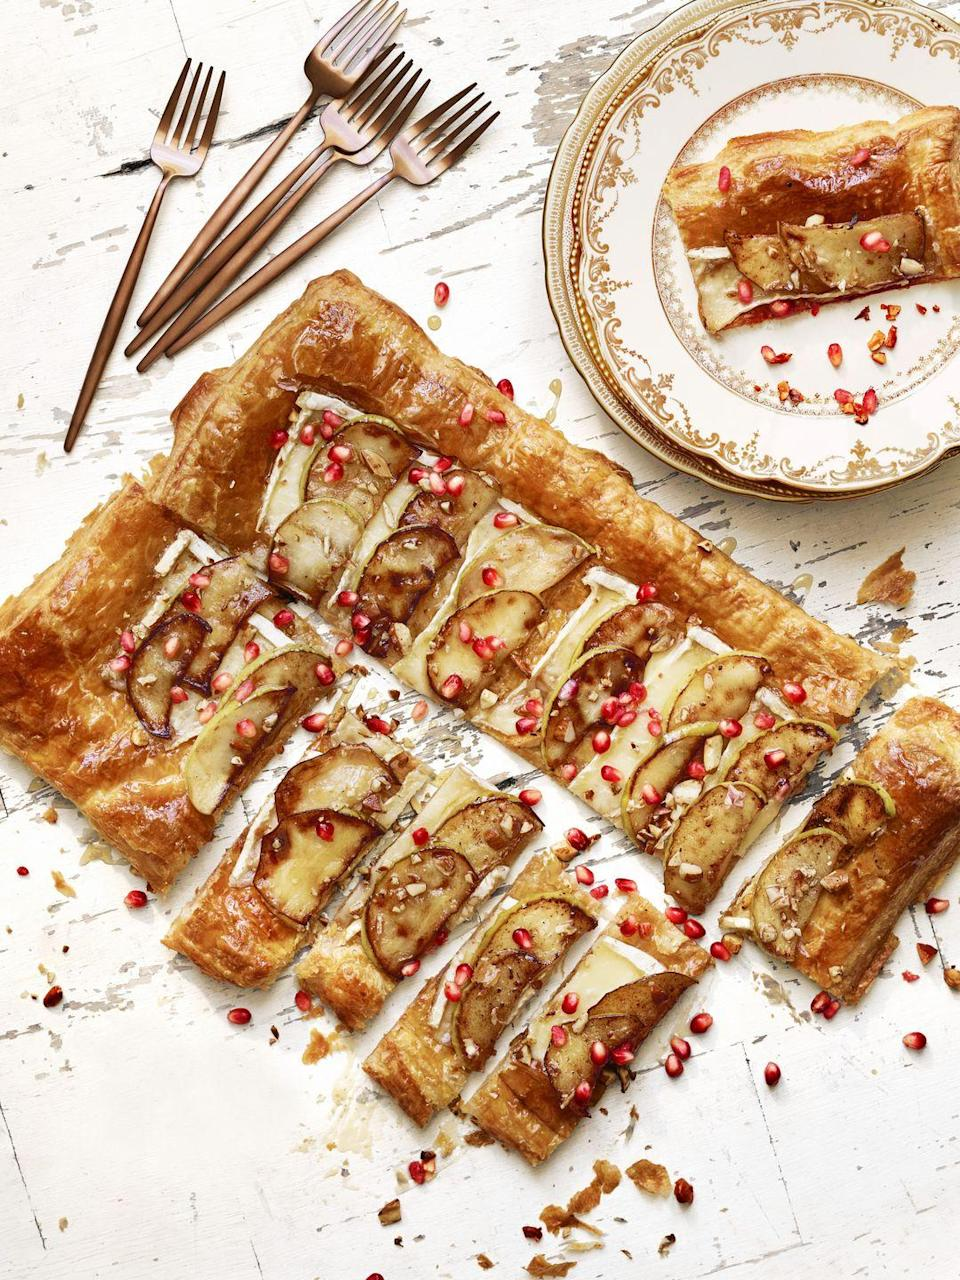 """<p>If you're all about looking fancy with zero effort, this sweet and savory tart is for you.</p><p><em><a href=""""https://www.goodhousekeeping.com/food-recipes/a41395/best-brie-apple-tart/"""" rel=""""nofollow noopener"""" target=""""_blank"""" data-ylk=""""slk:Get the recipe for Brie and Apple Tart »"""" class=""""link rapid-noclick-resp"""">Get the recipe for Brie and Apple Tart » </a></em></p>"""